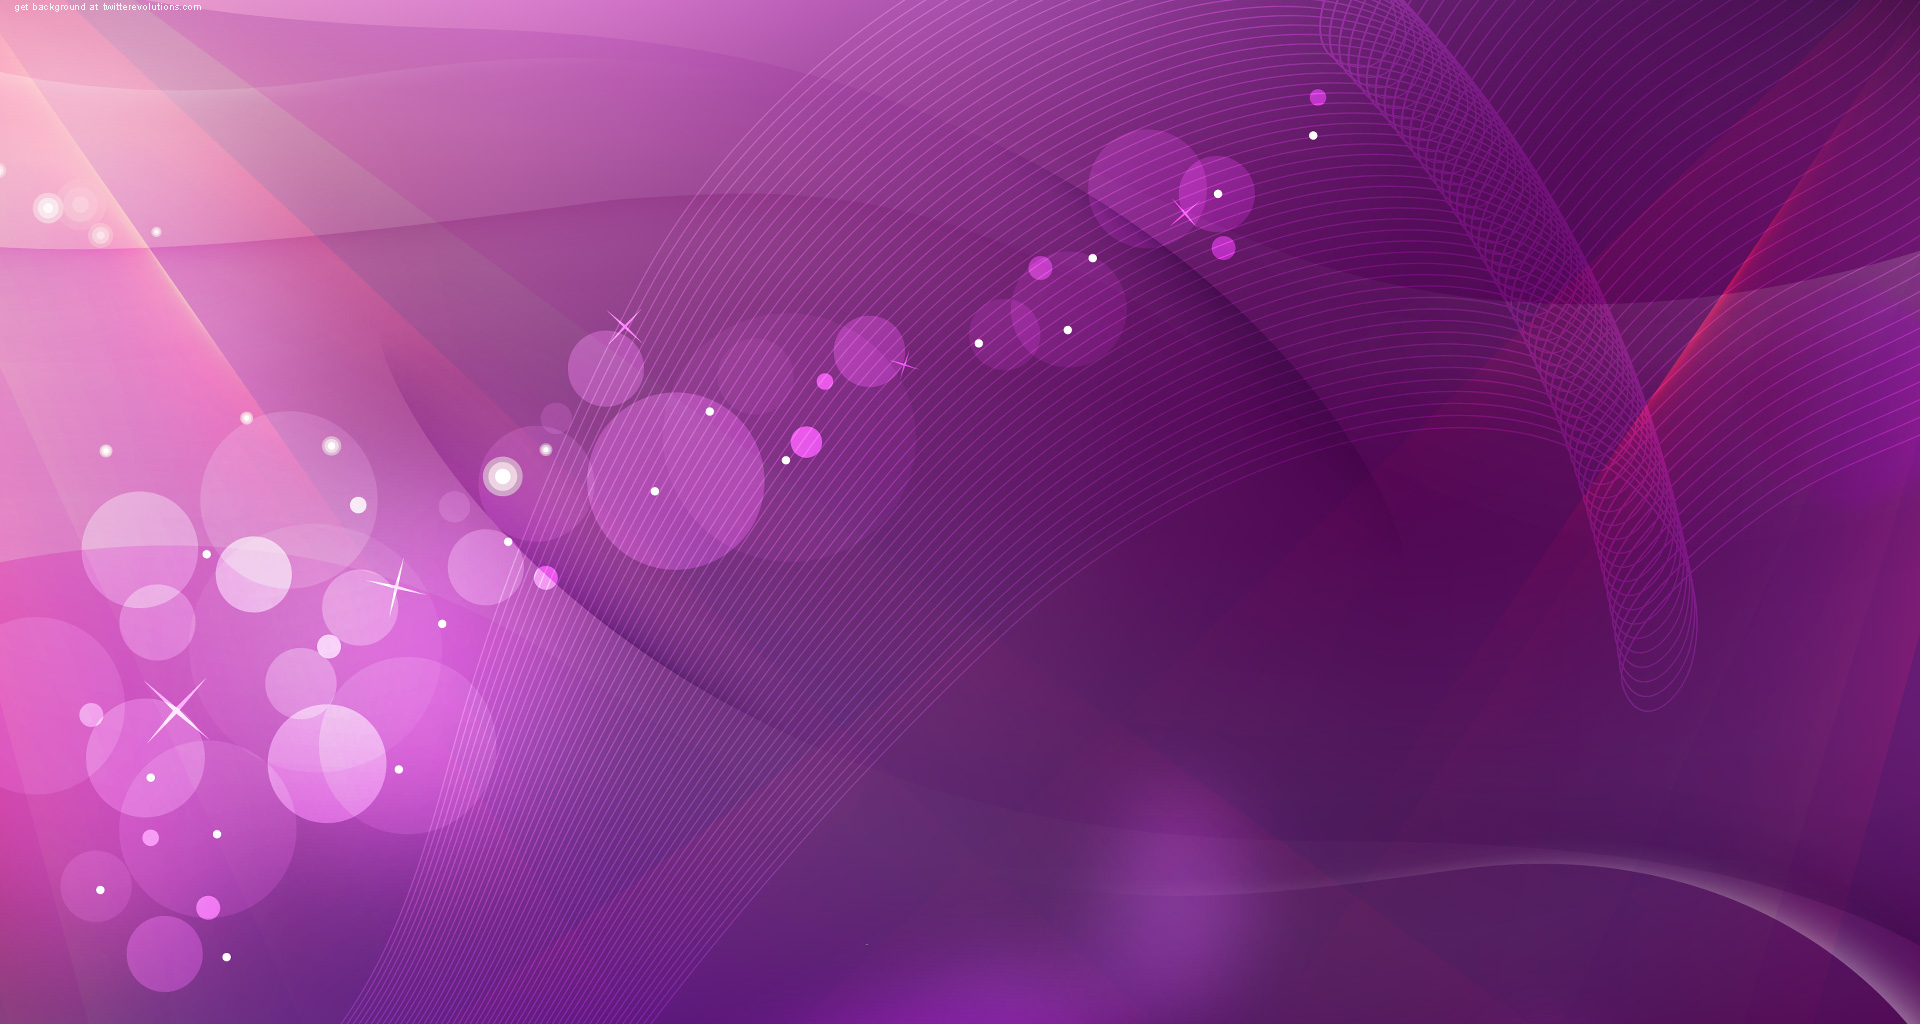 Girly Backgrounds HD wallpaper background 1920x1024